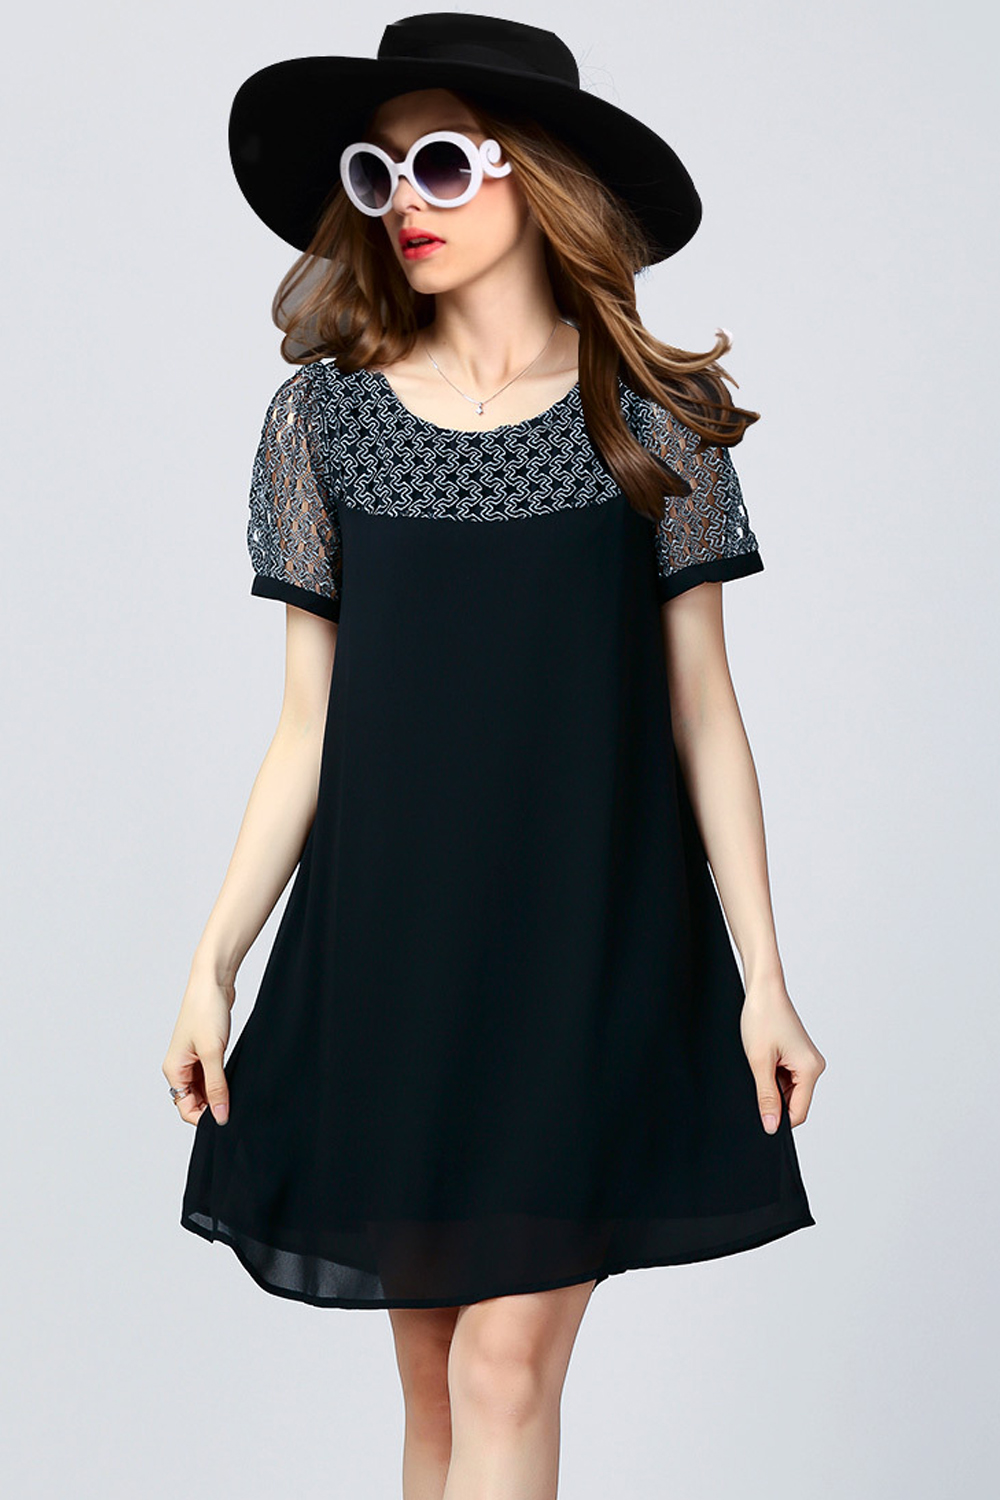 99e487a3469 UNOMATCH WOMEN SPECIAL OCCASION WEAR A-LINE LONG SHIRT AND BLOUSE BLACK